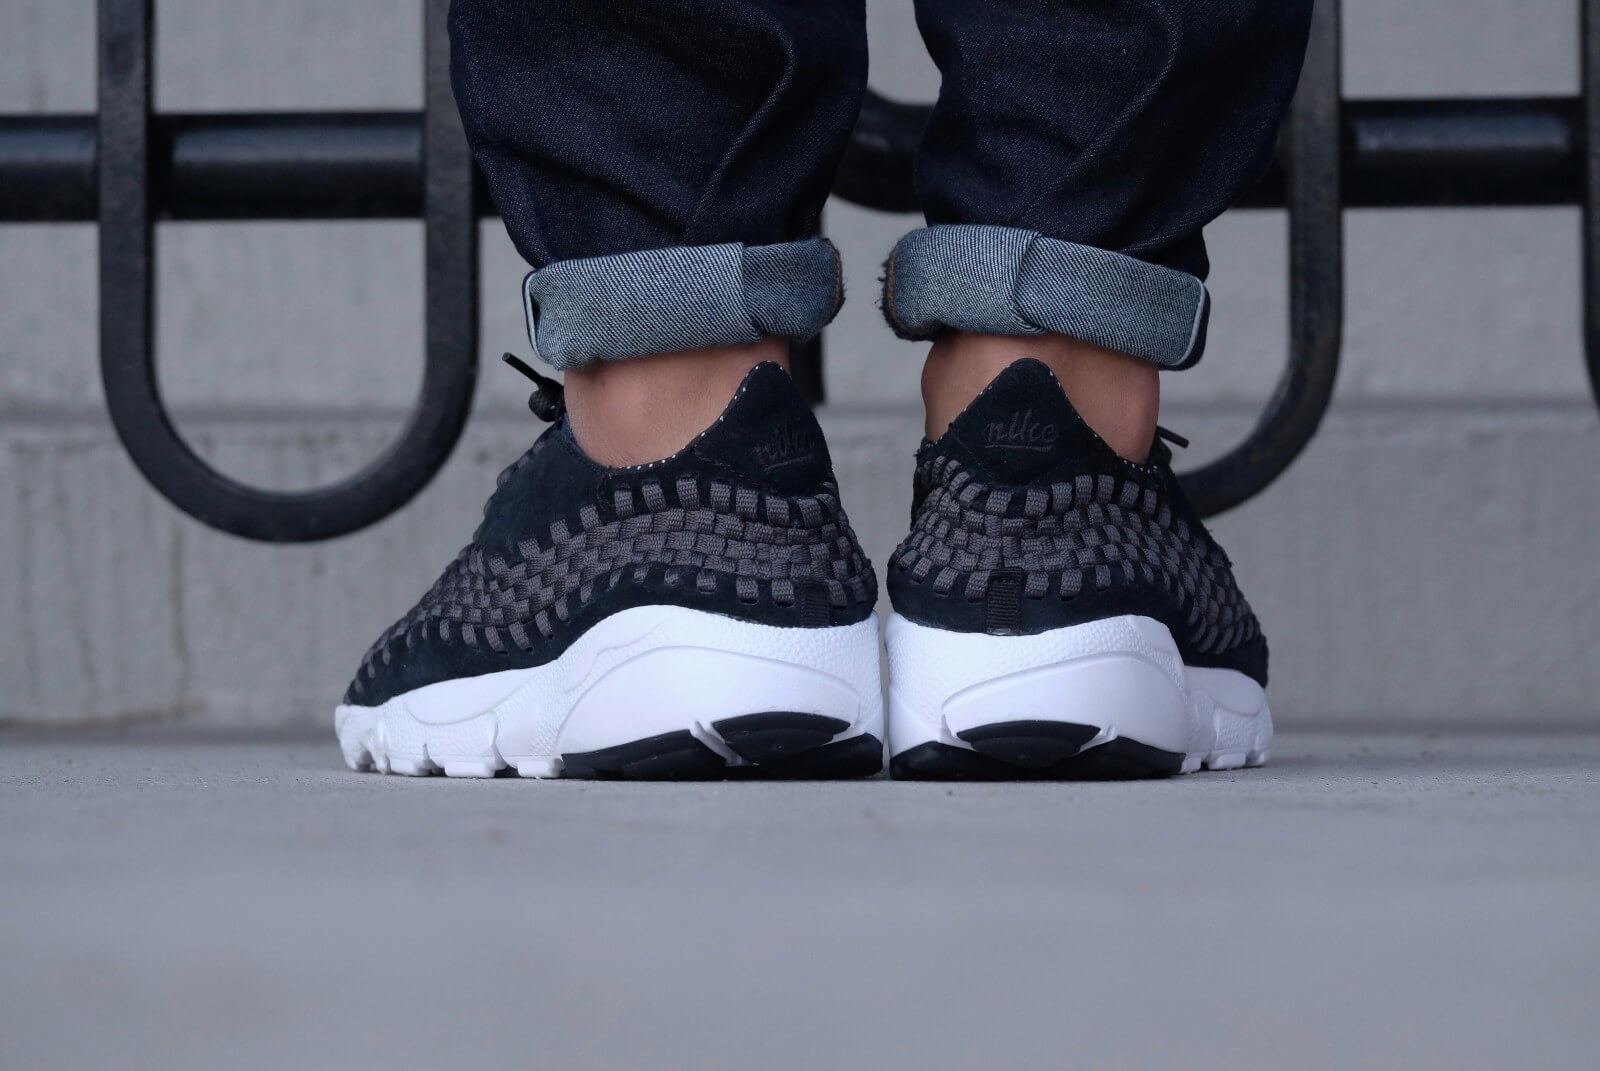 Nike Air Footscape Woven NM BlackBlack Anthracite White 875797 001